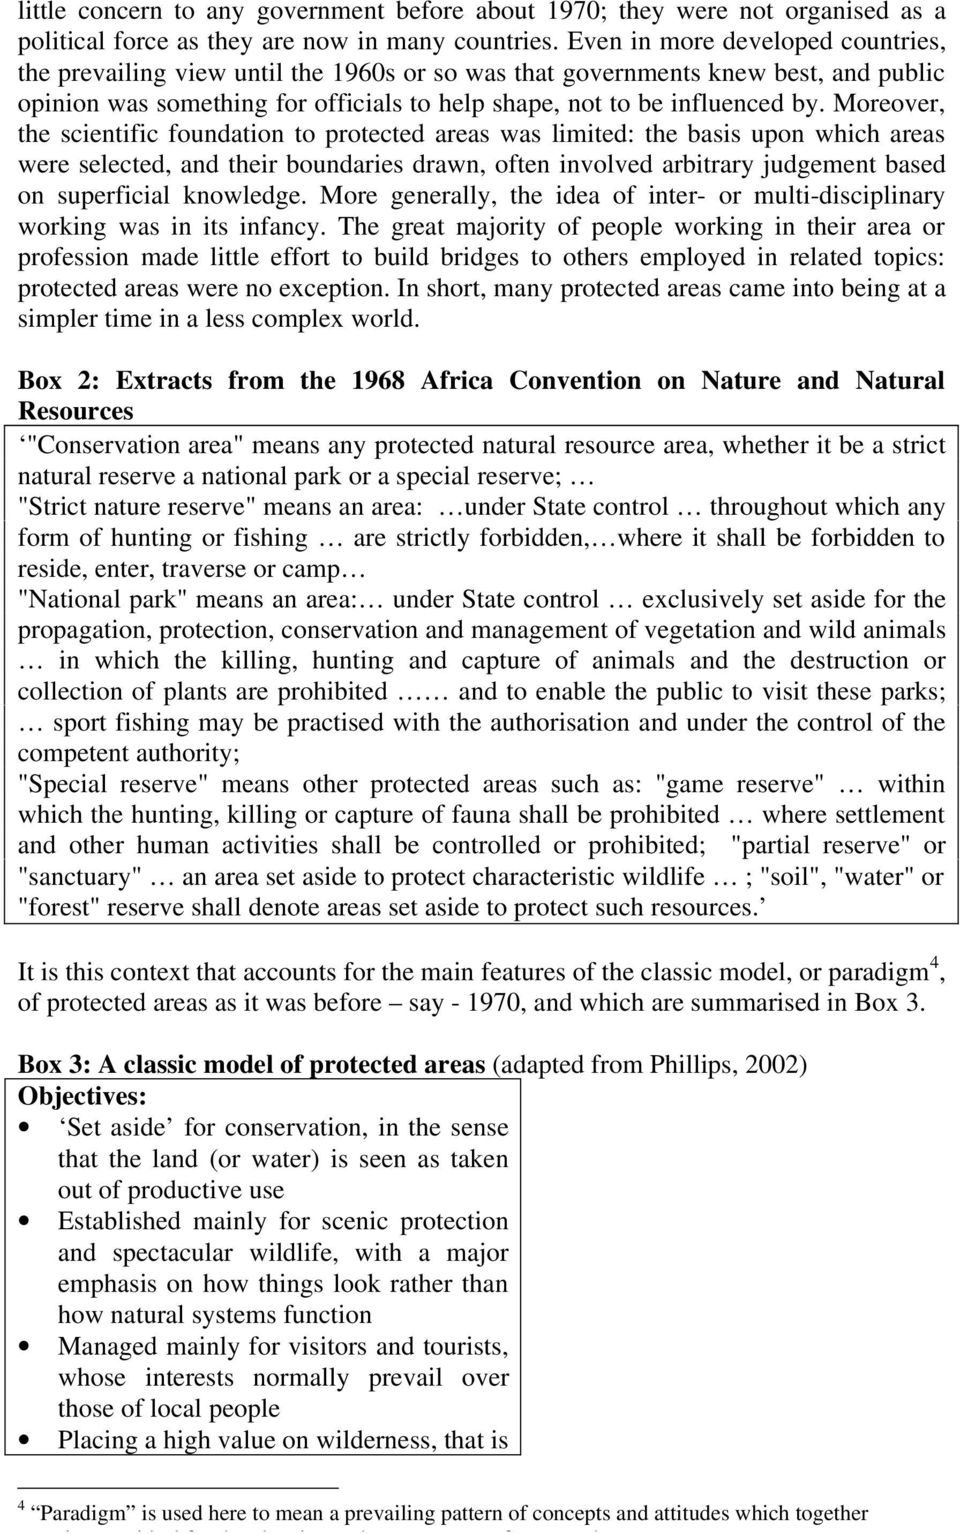 Moreover, the scientific foundation to protected areas was limited: the basis upon which areas were selected, and their boundaries drawn, often involved arbitrary judgement based on superficial